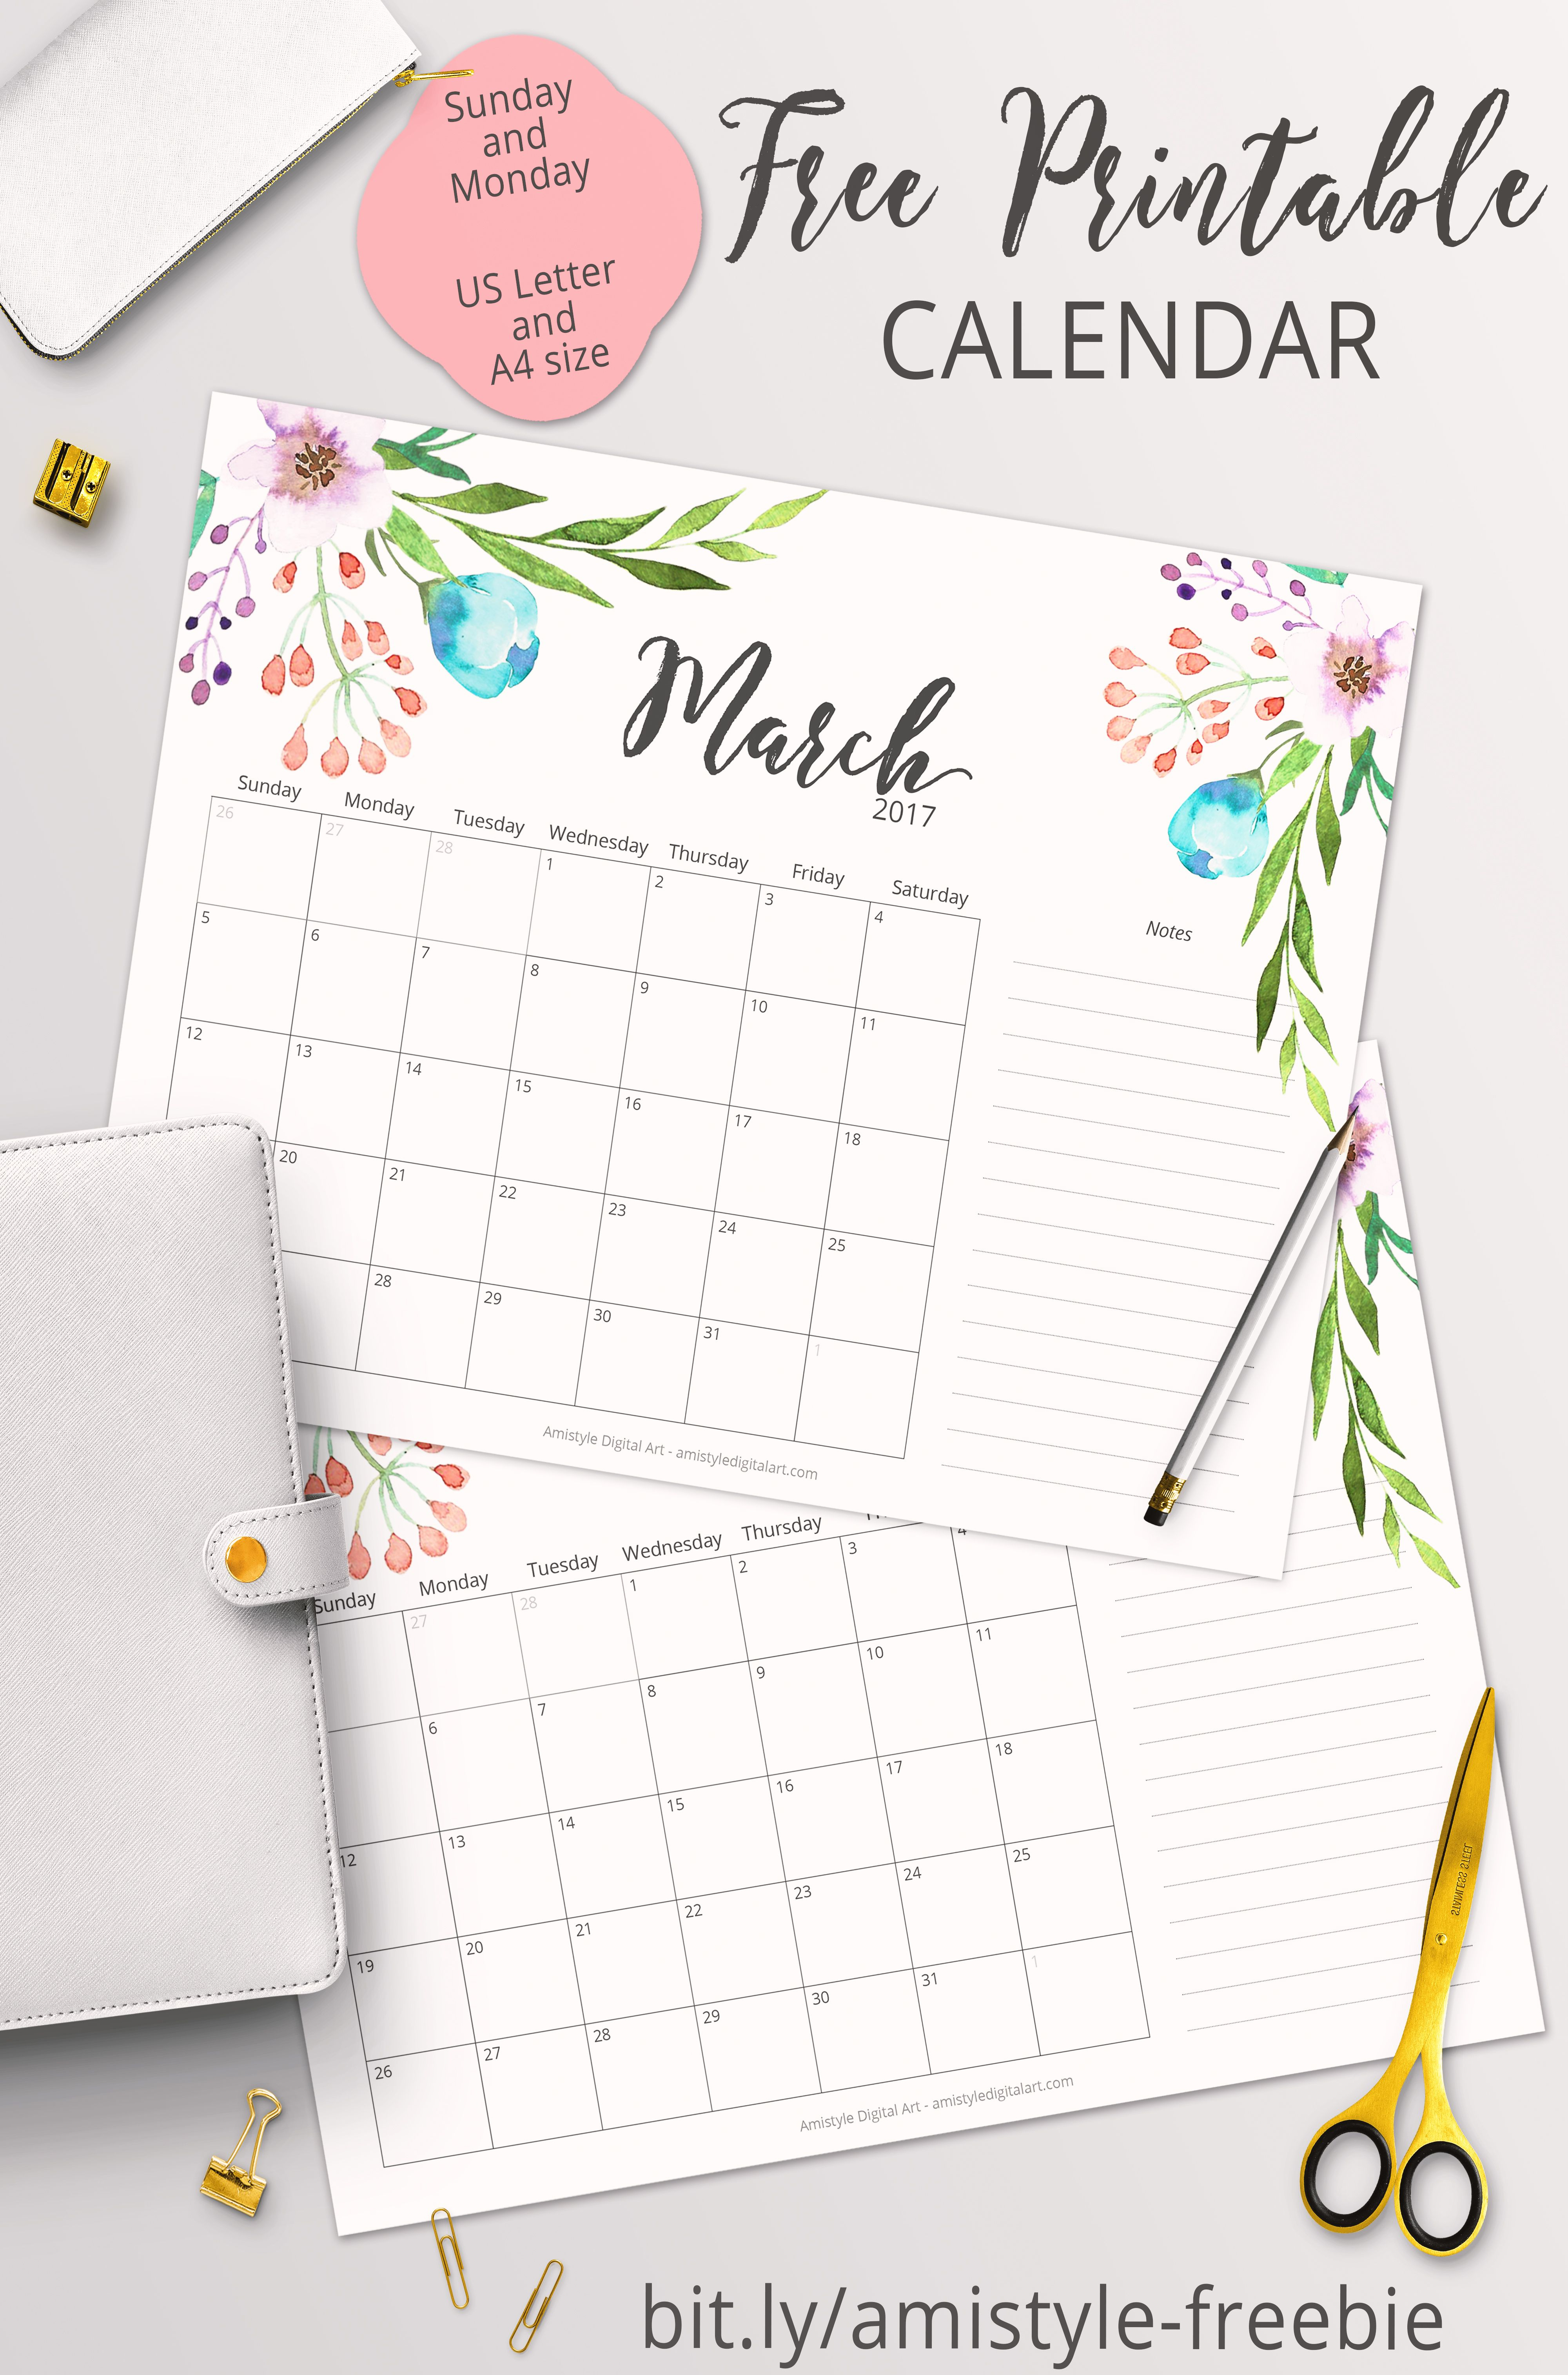 Free Printable Planner - 2017 March Calendar With Beautiful - Free Cute Printable Planner 2017